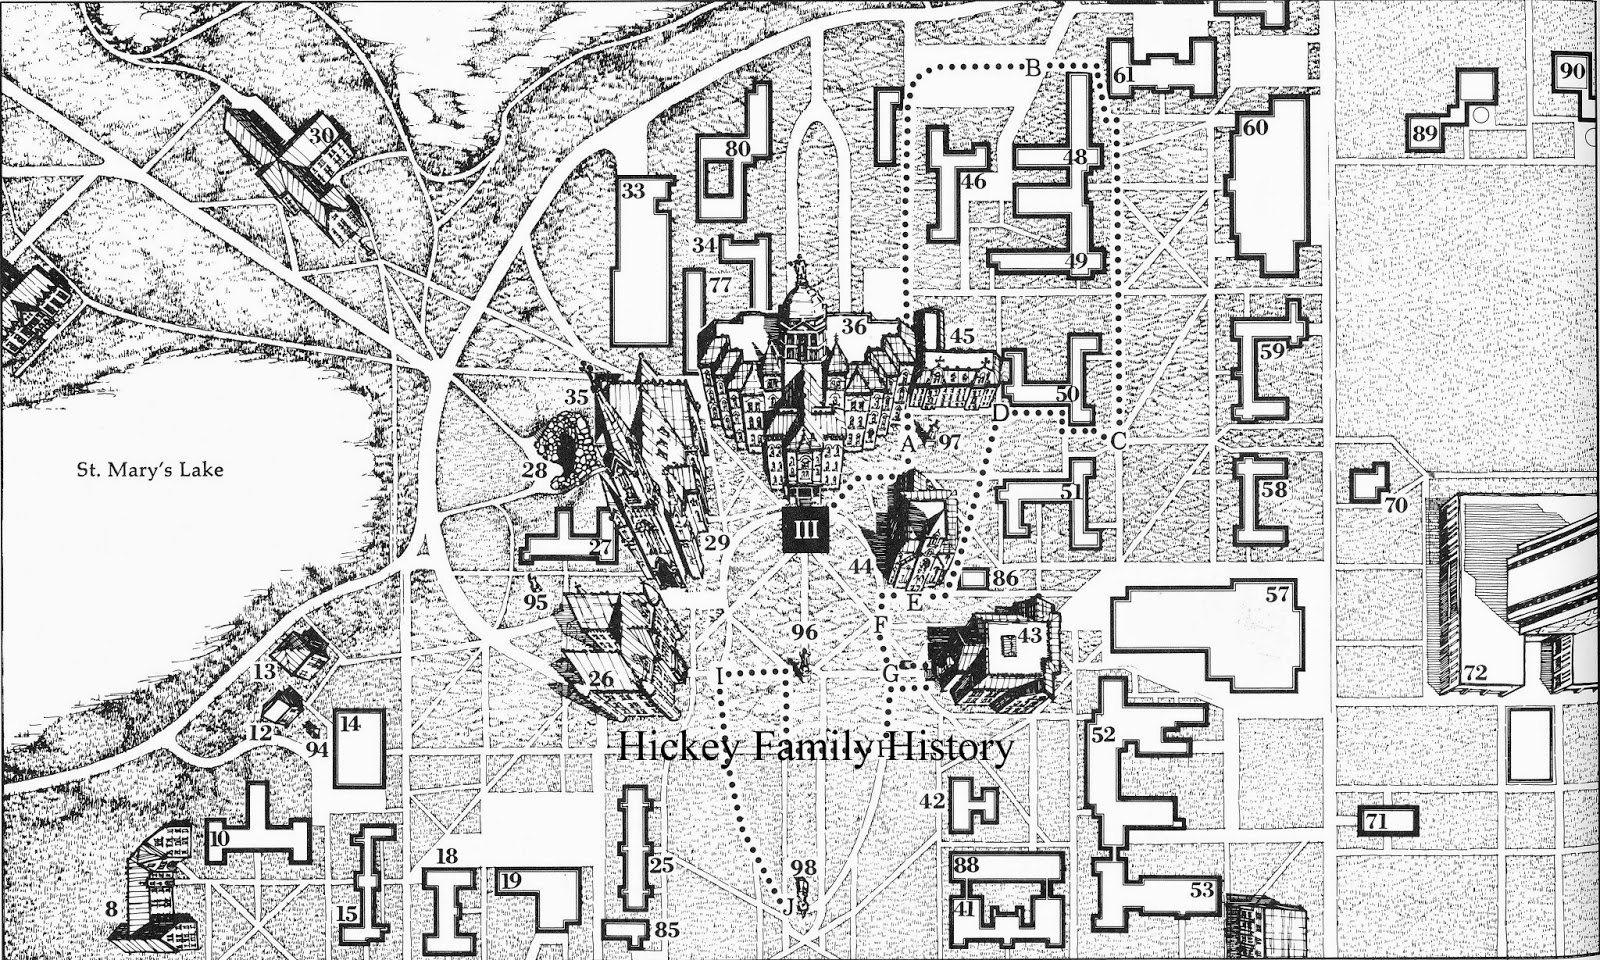 the laundry site is shown as building 33 on the map the outlined building includes the 1957 addition building 77 was the old geology building 1855